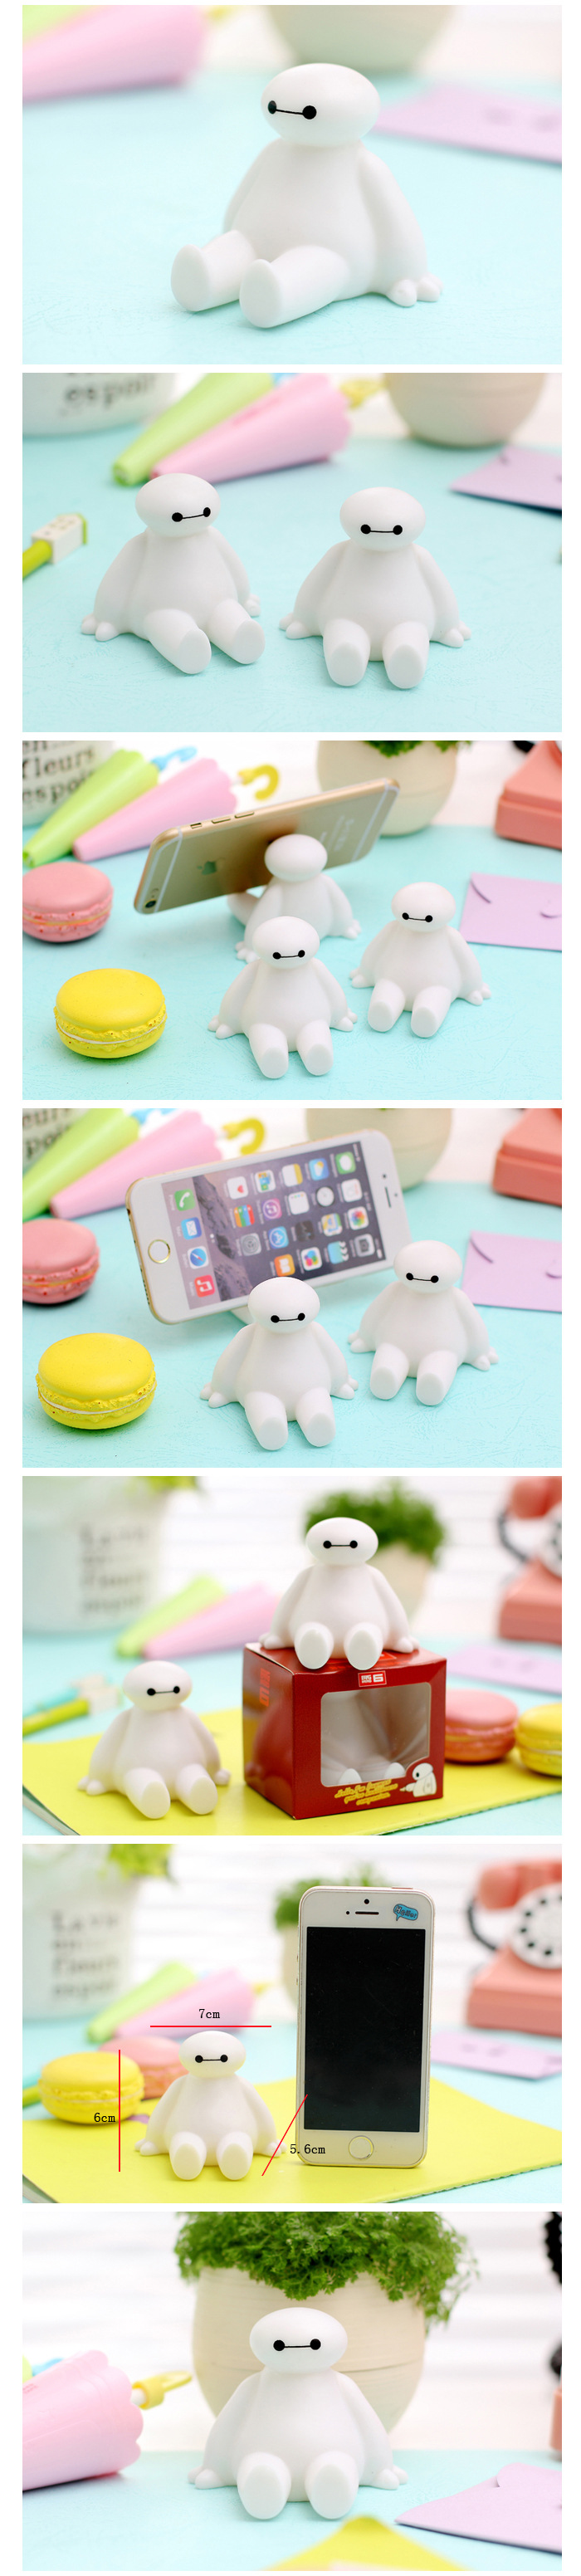 Cartoon White Stand Frame Mobile Phone Accessories Seat Bracket Lazy Holder For Samsung For iPhone For Xiaomi for All Phones